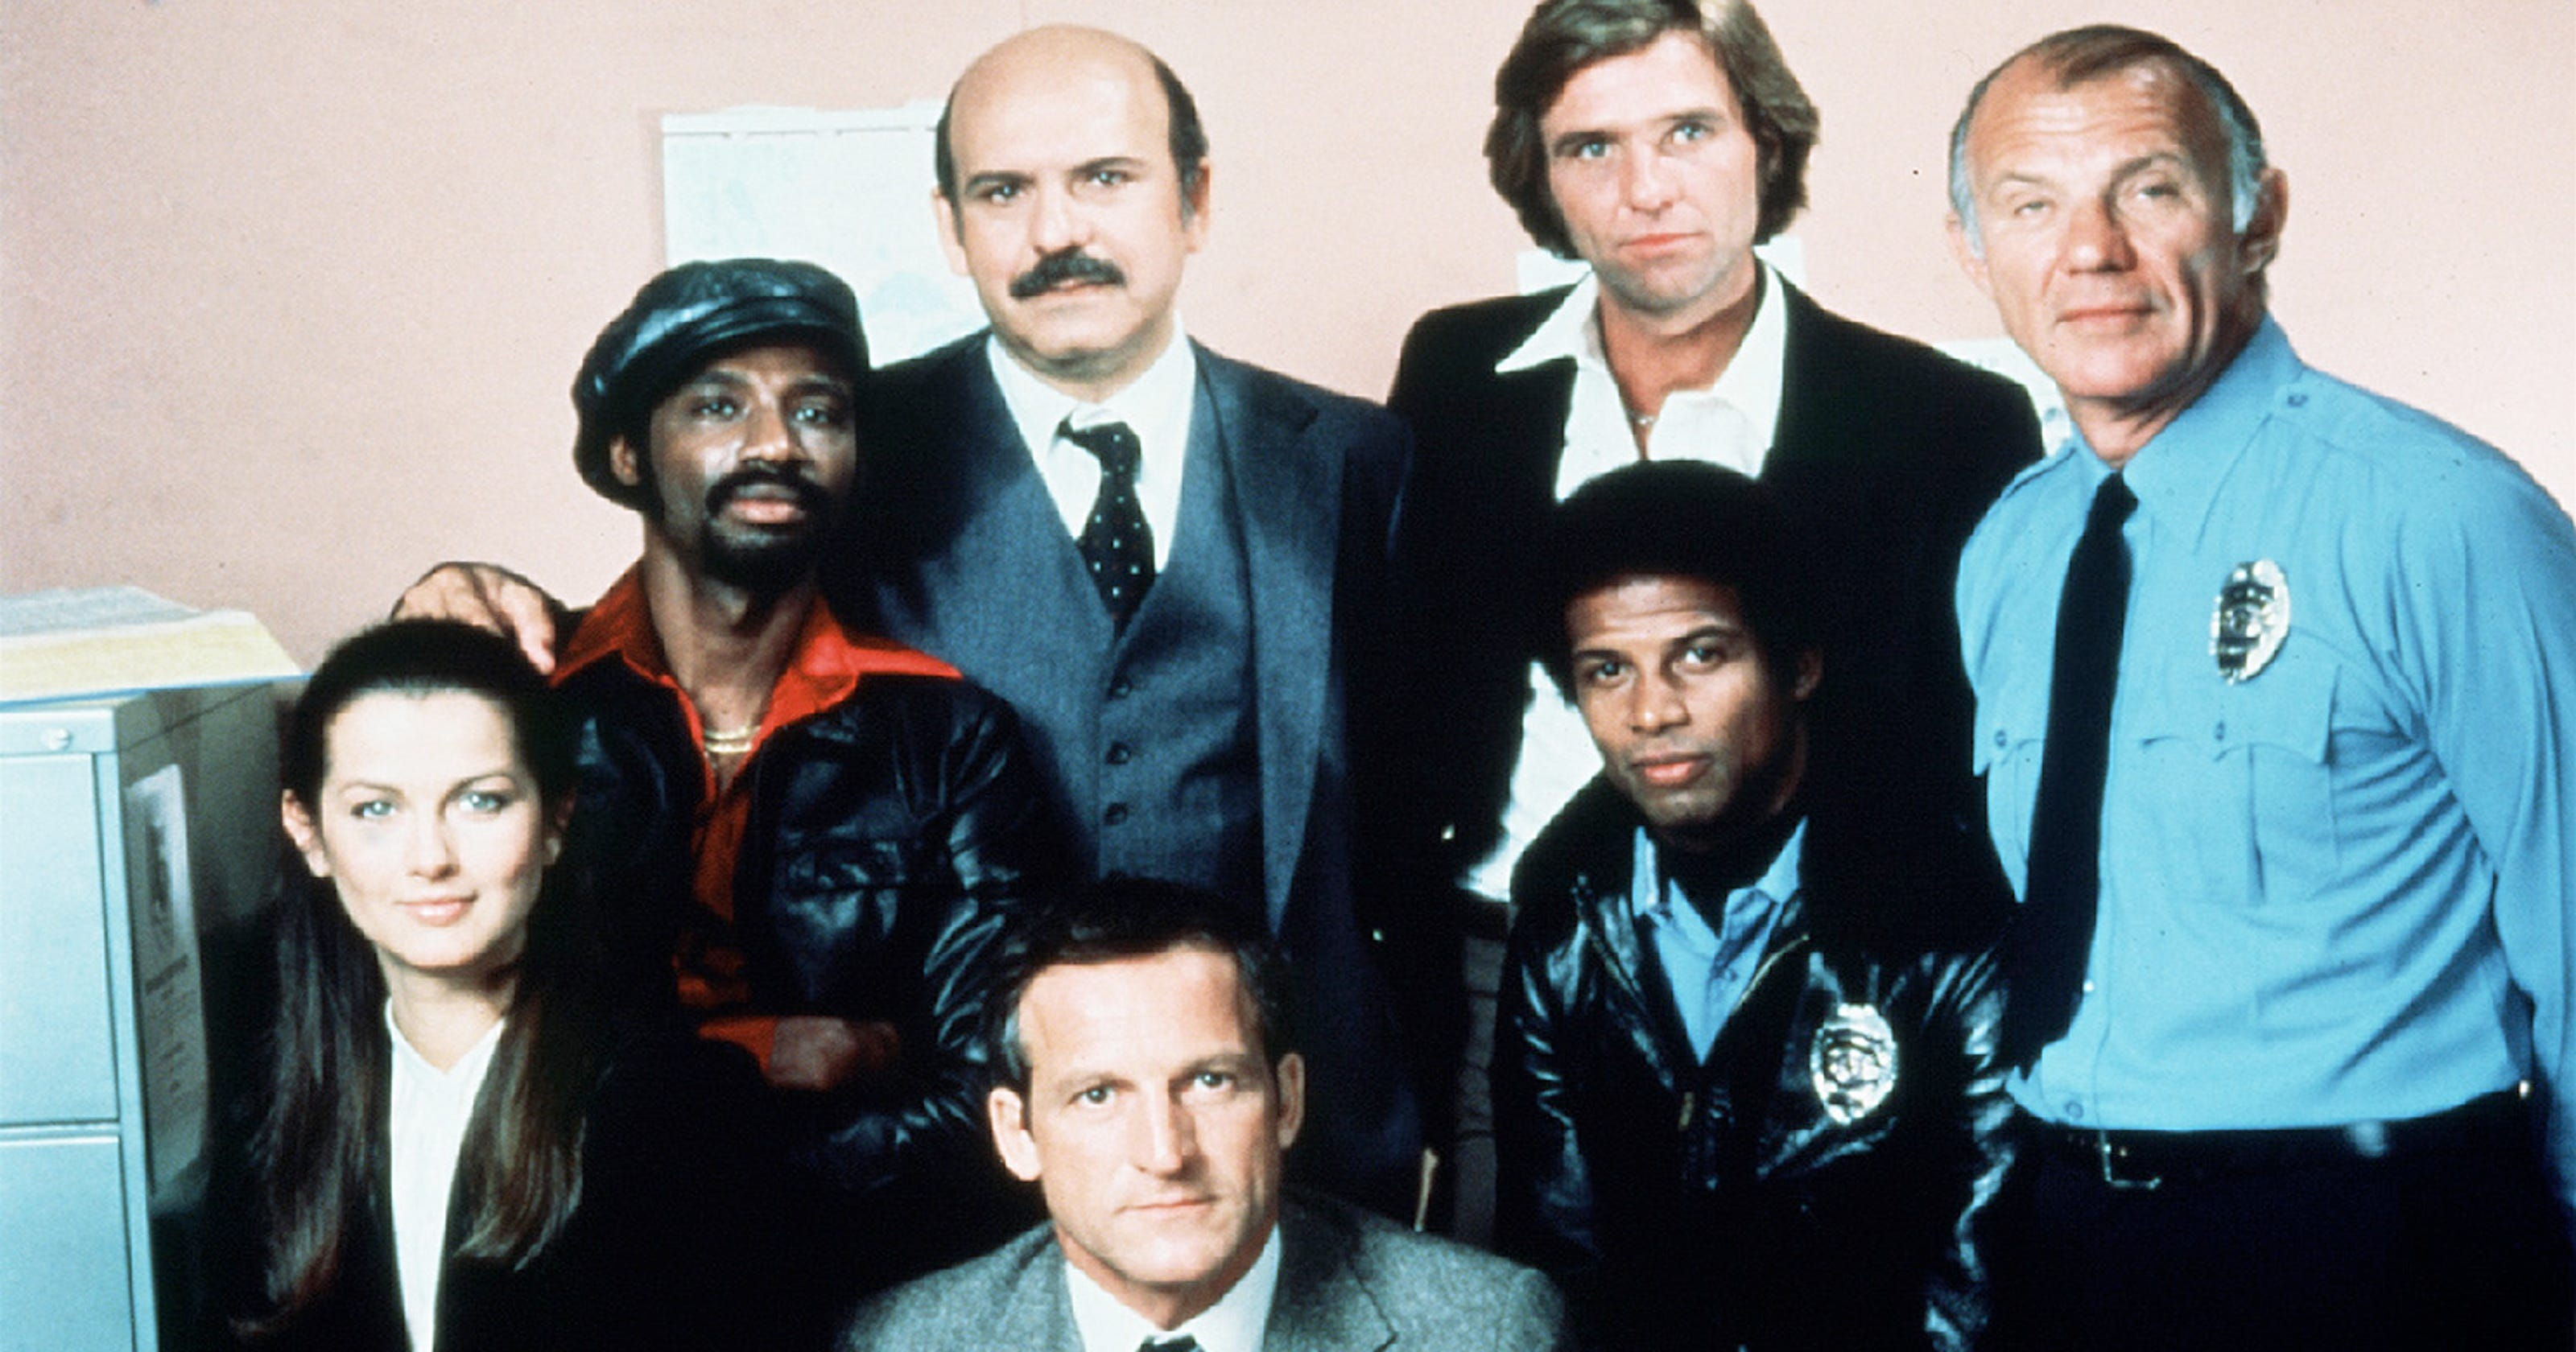 Entertainment flashback: How 'Hill Street Blues' gave TV